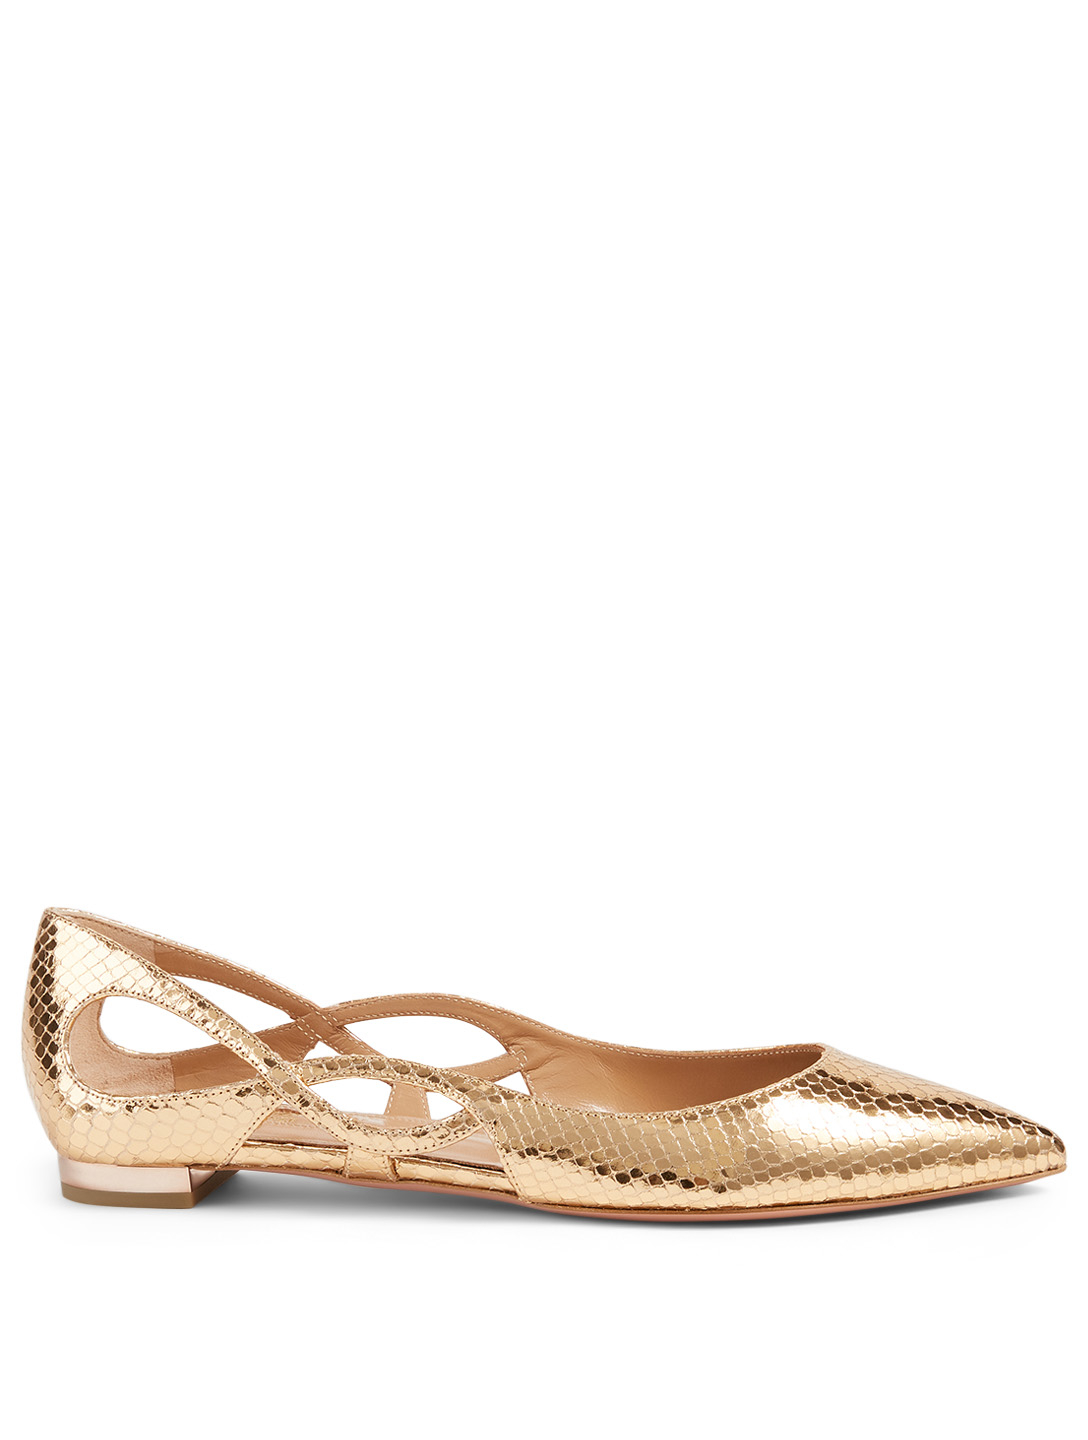 AQUAZZURA Forever Snake-Embossed Metallic Leather Ballet Flats Women's Metallic